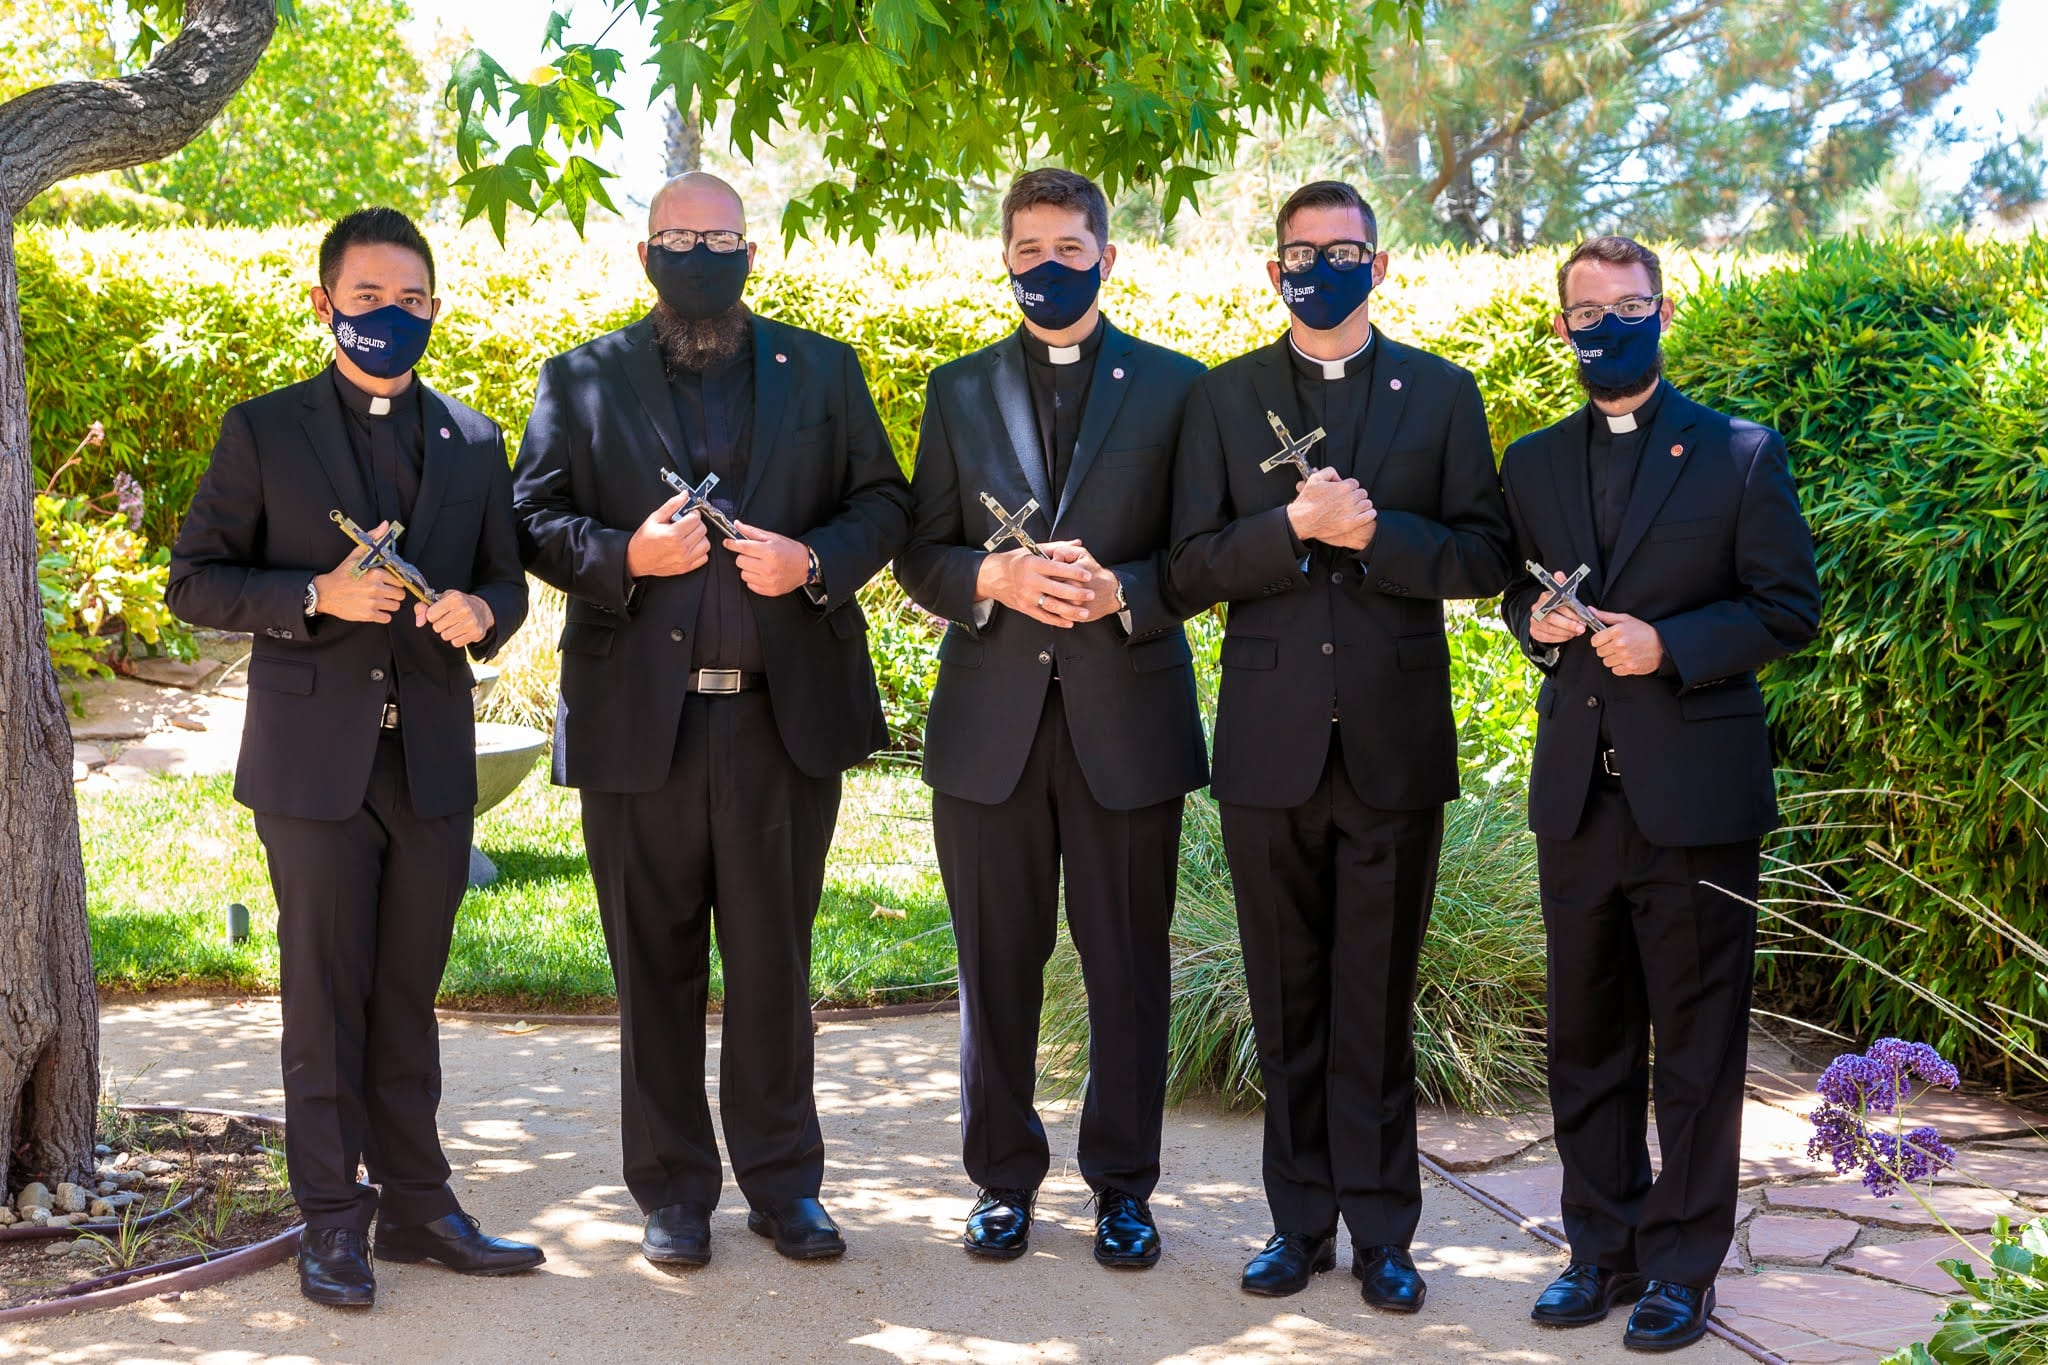 2020 First Vows Culver City with masks